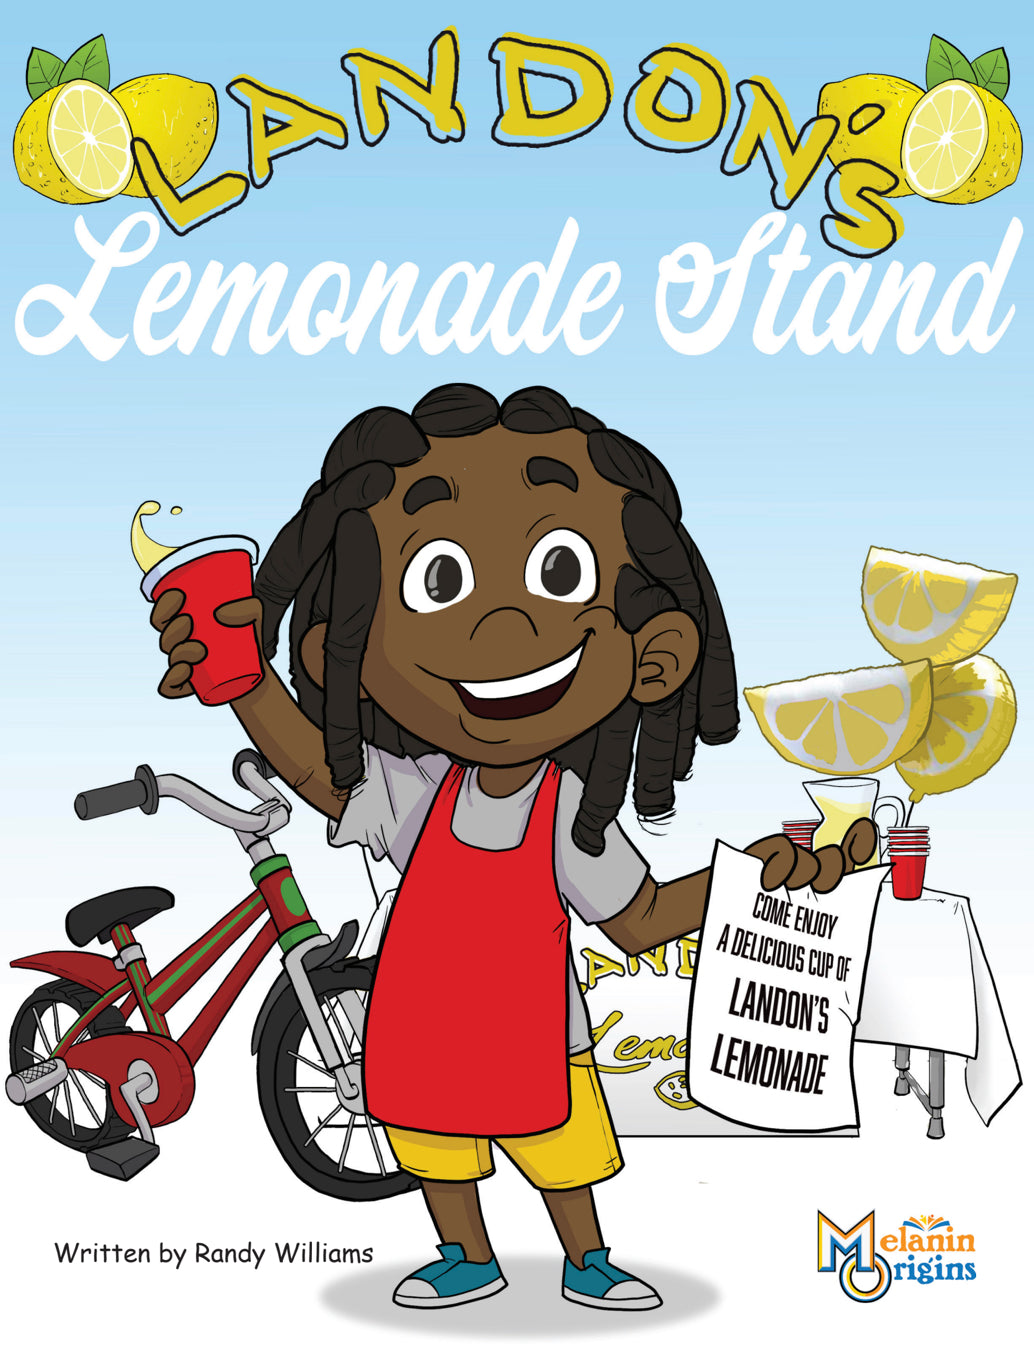 Landon's Lemonade Stand (Hardcover)